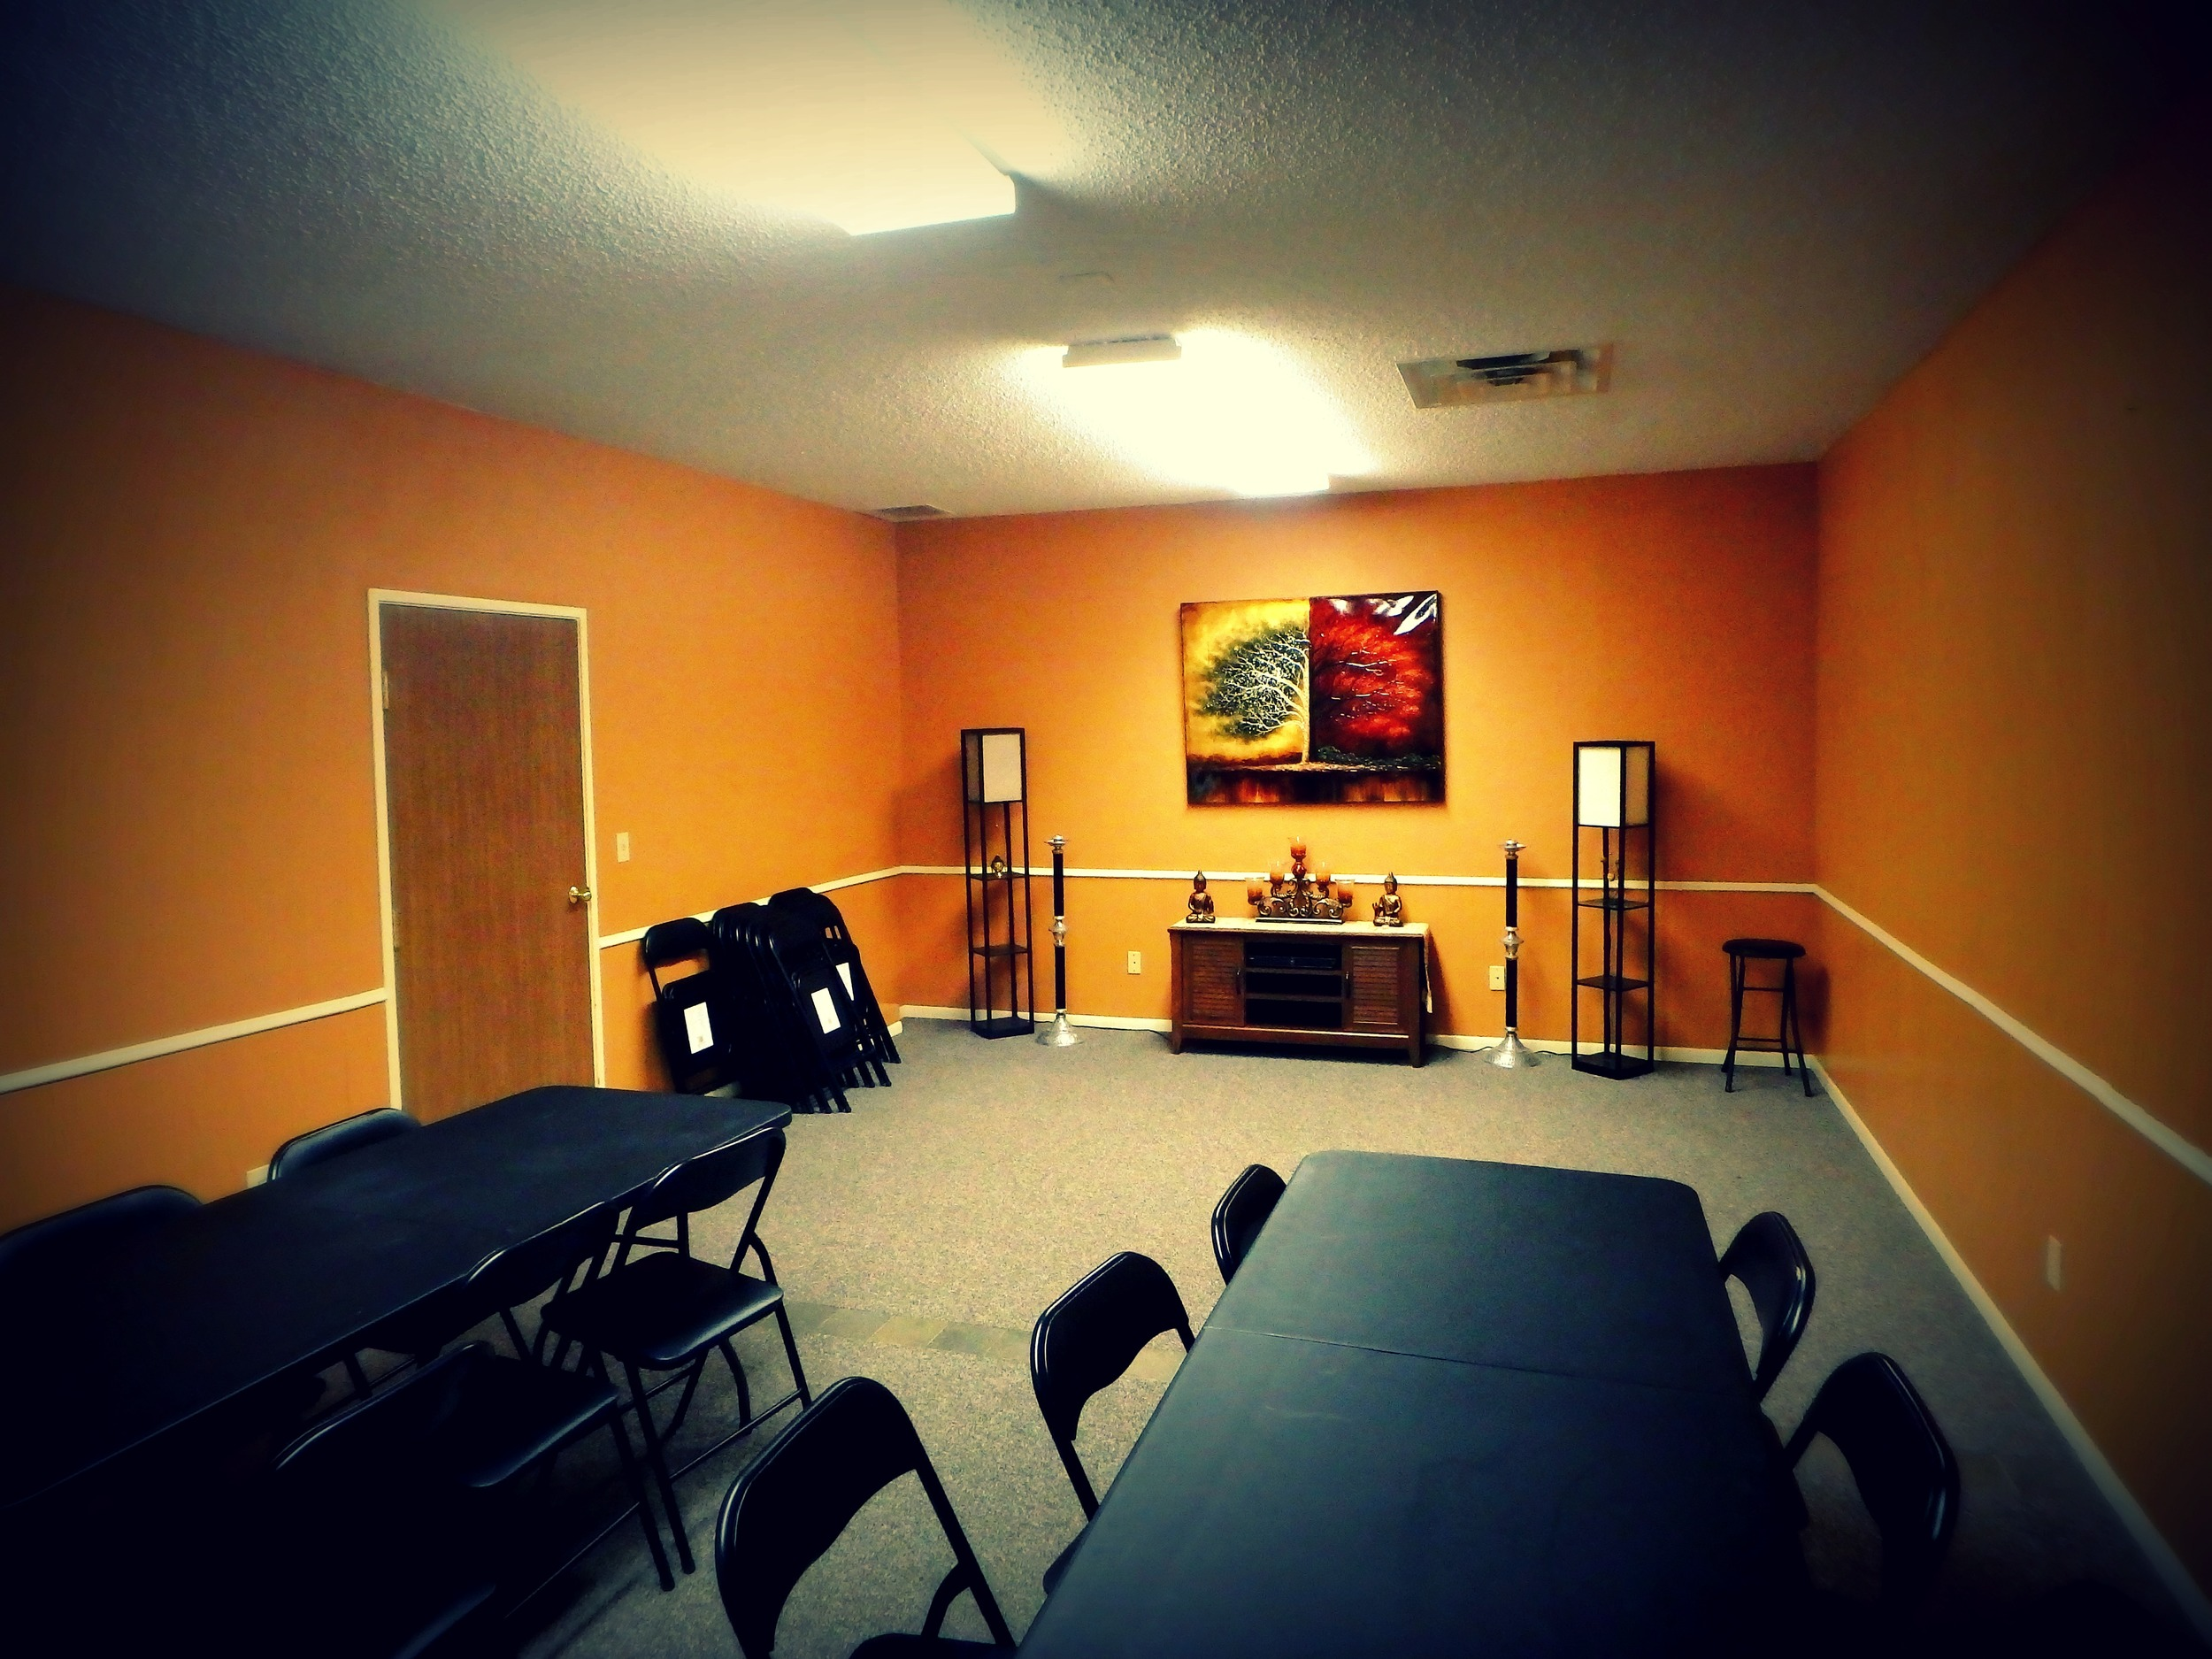 I'm so excited to have access to this beautiful space to offer various workshops, teach yoga classes and chant at healing rituals <3 It all begins in February!